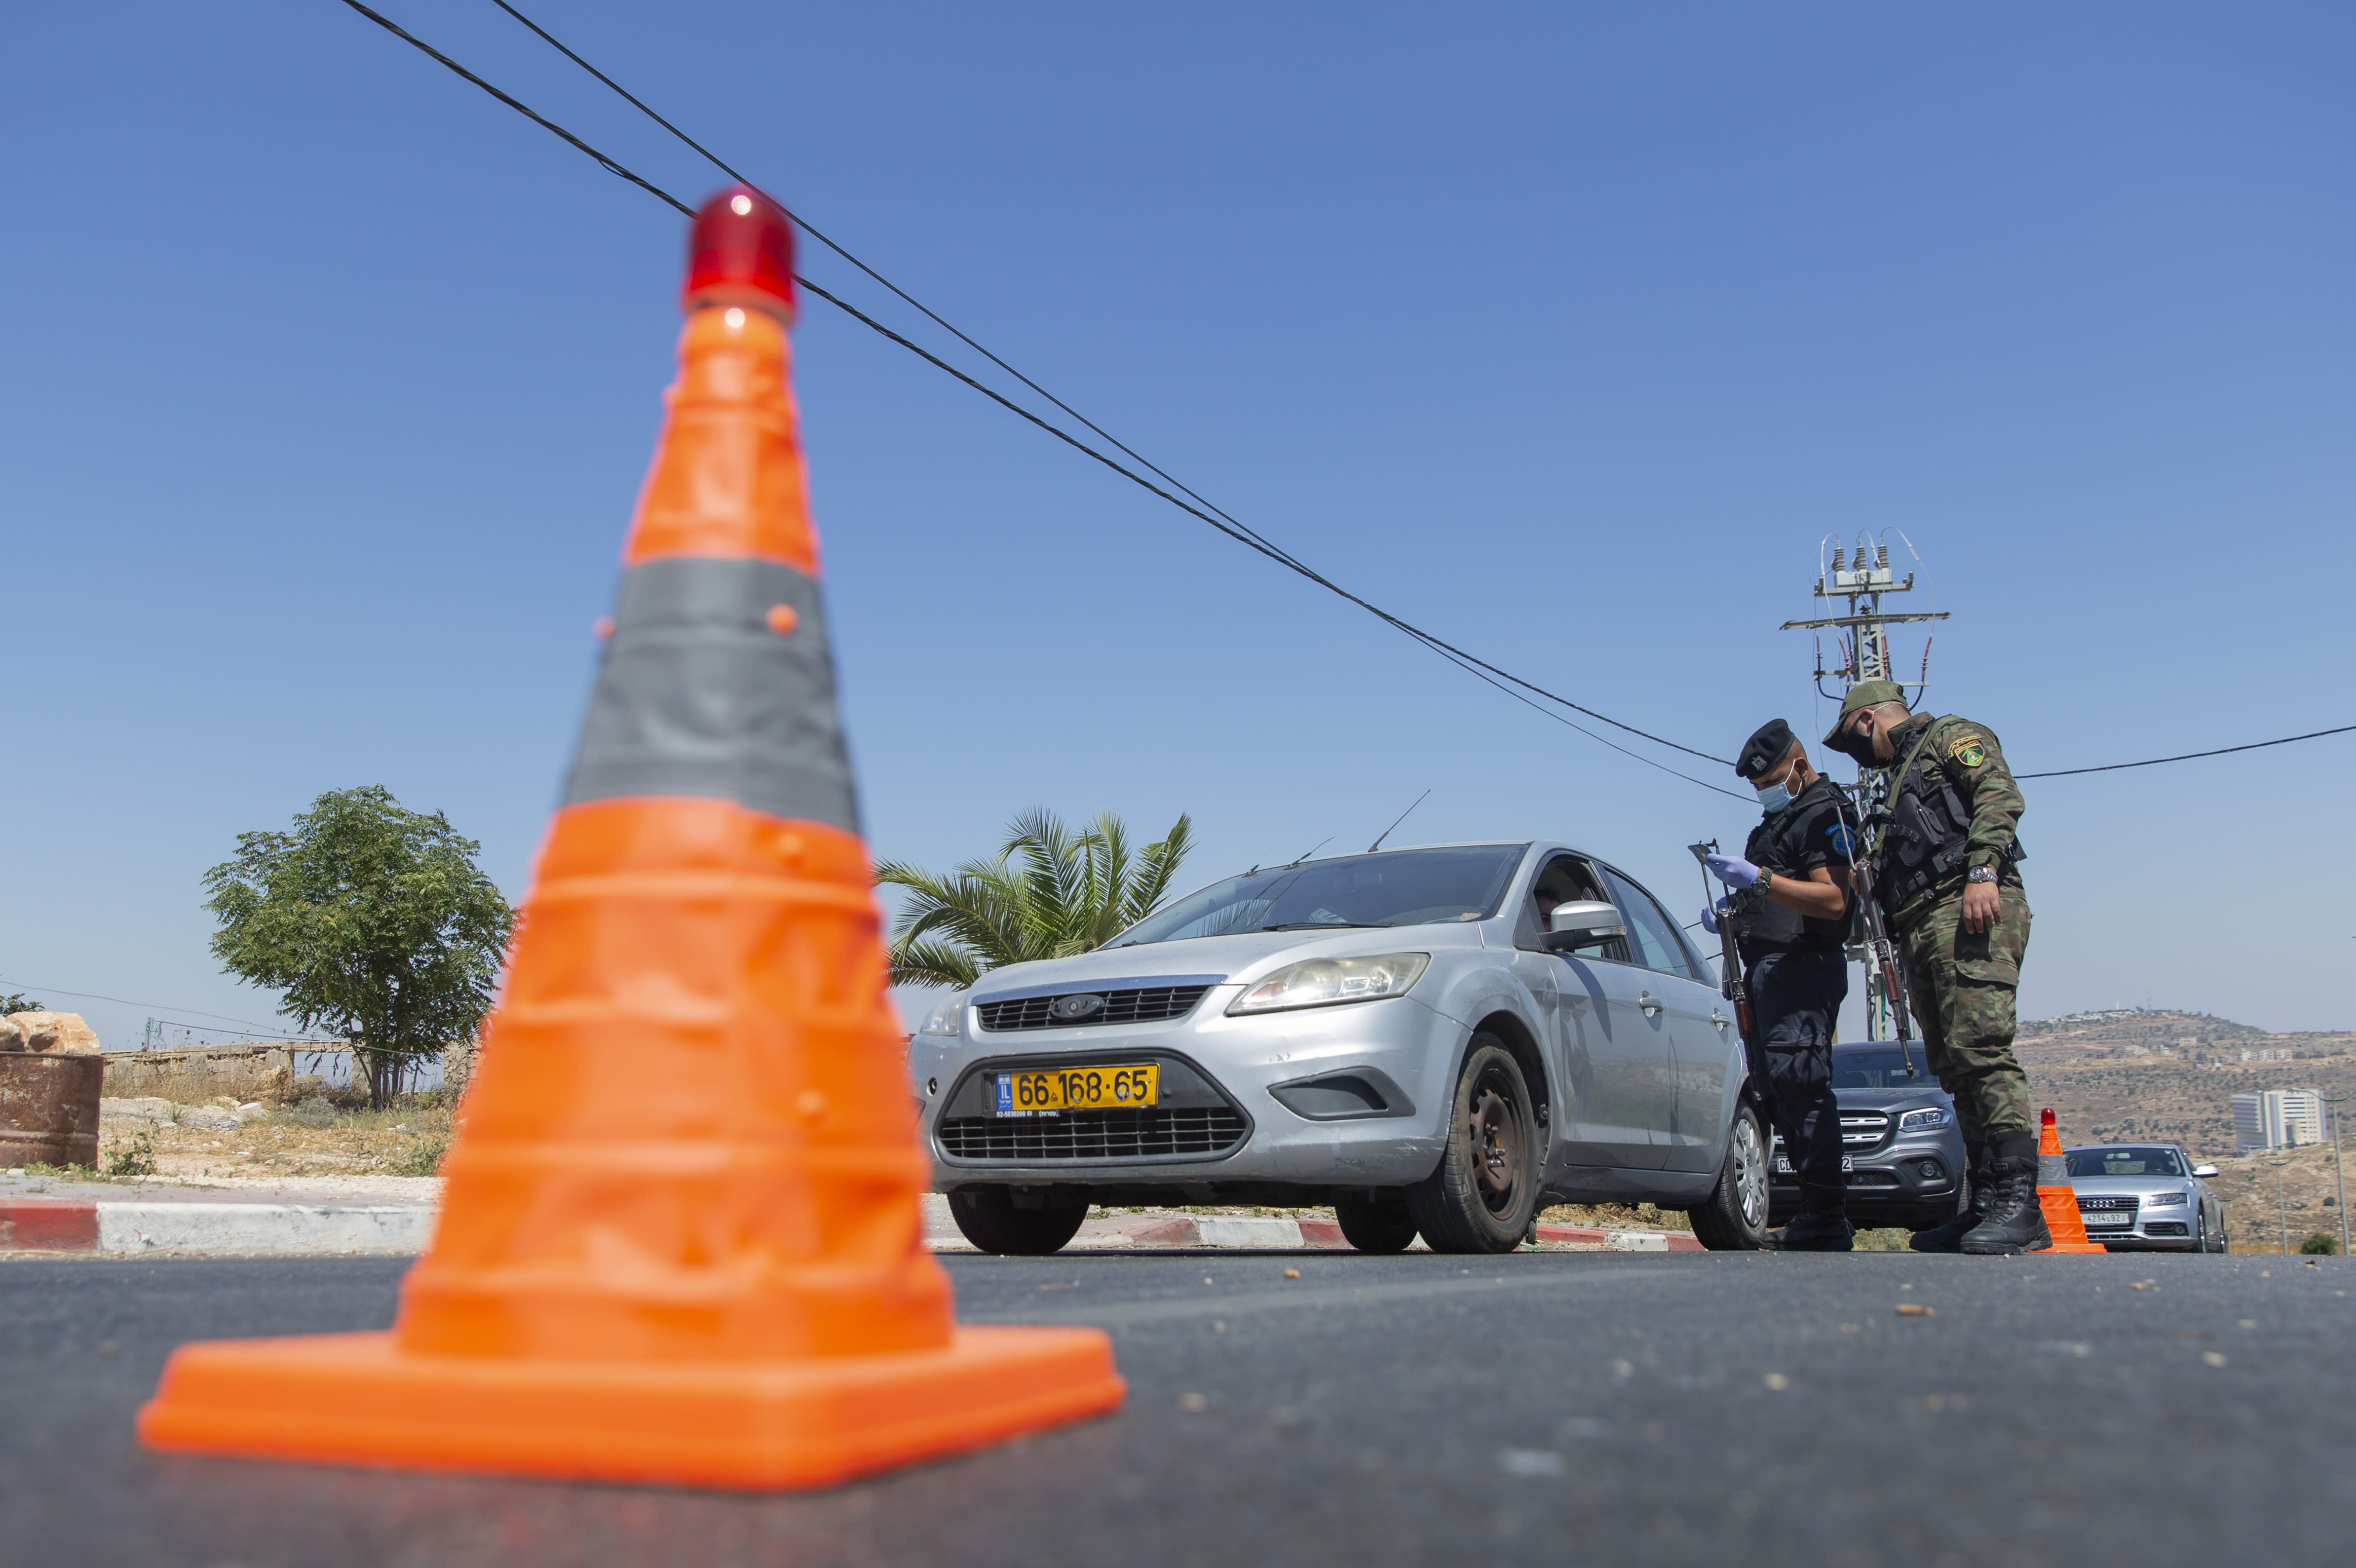 A Palestinian security unit mans a checkpoint at an entrance of in the West Bank city of Ramallah, Thursday, July 2, 2020. The Palestinian Authority has announced a five-day total lockdown in the West Bank starting Friday, in response to a major increase in coronavirus cases and deaths in recent days. (AP Photo/Nasser Nasser)